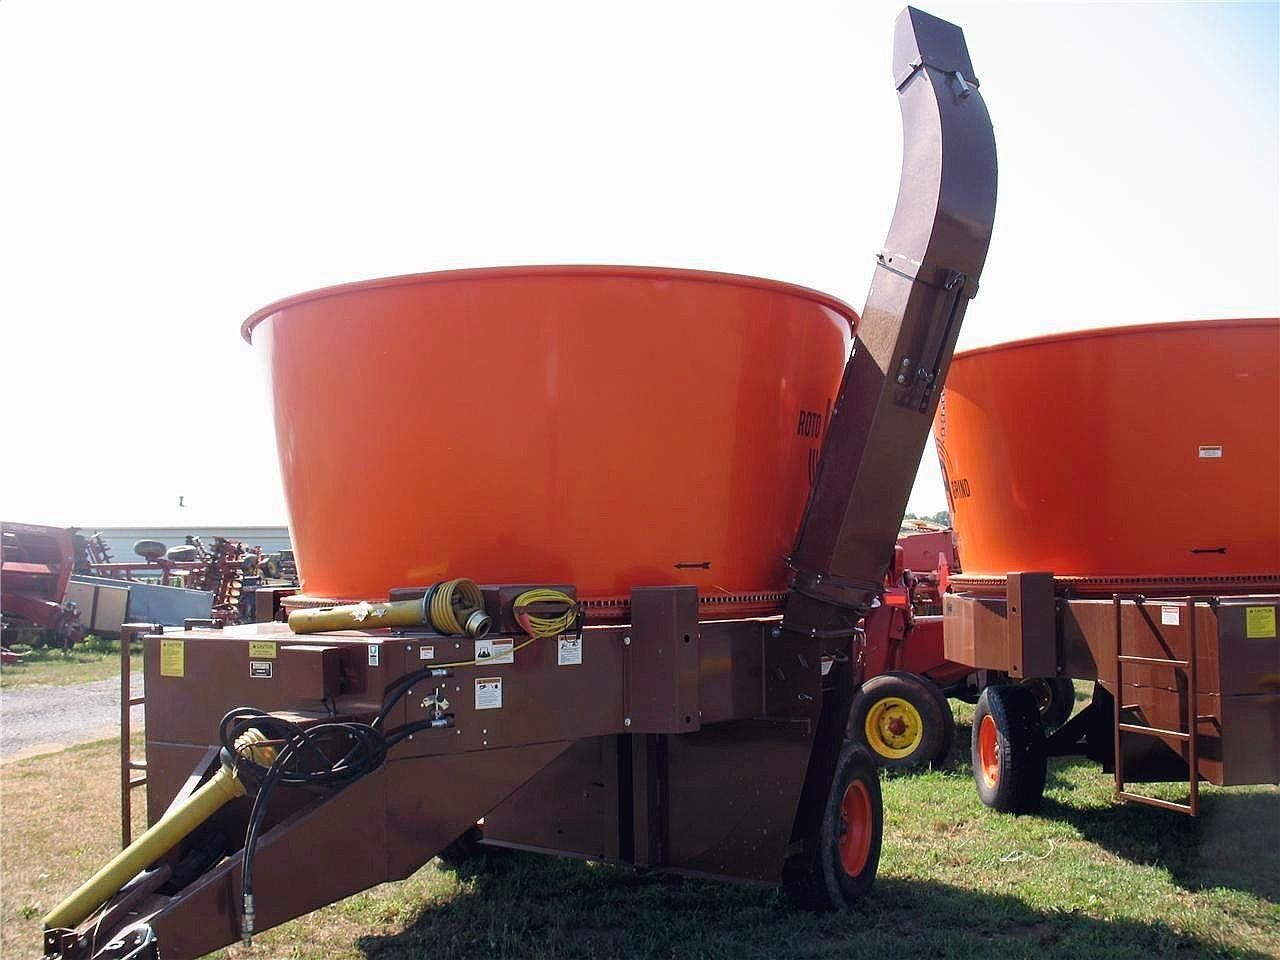 2021 Roto Grind 1090 Grinders and Mixer